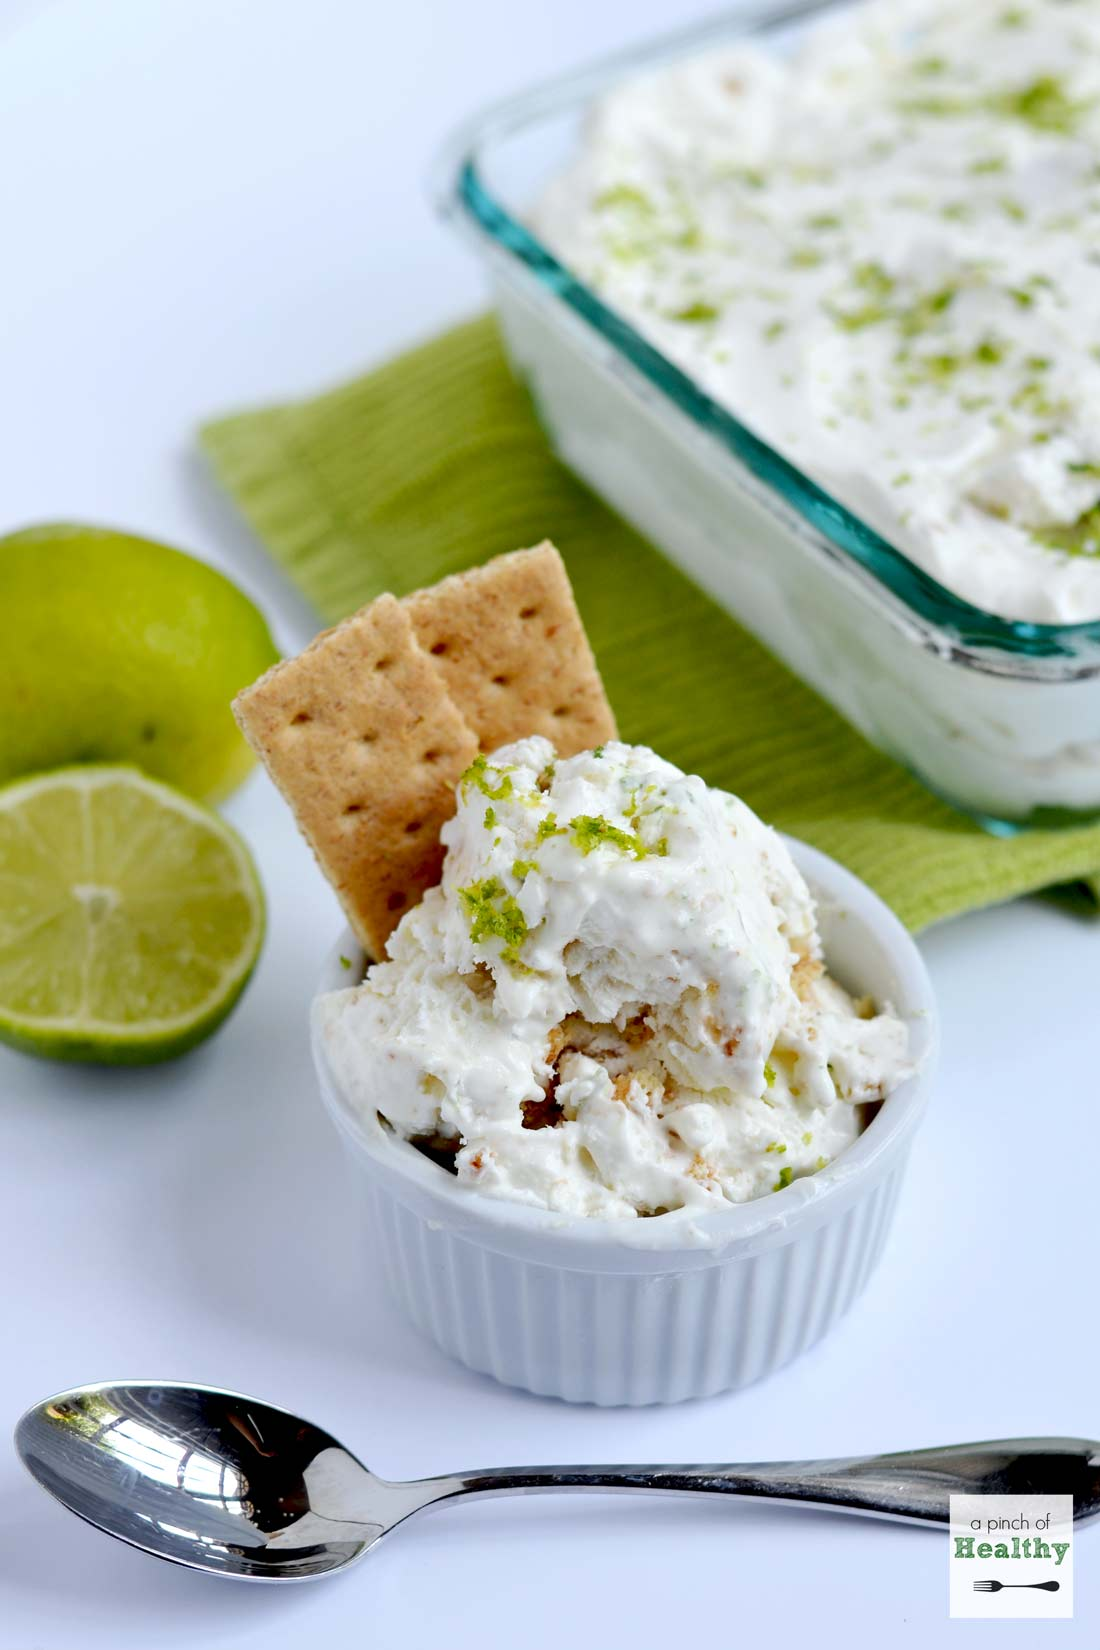 Key Lime Pie Ice Cream - no churn, and only 4 simple ingredients. So easy and delicious! | APinchOfHealthy.com